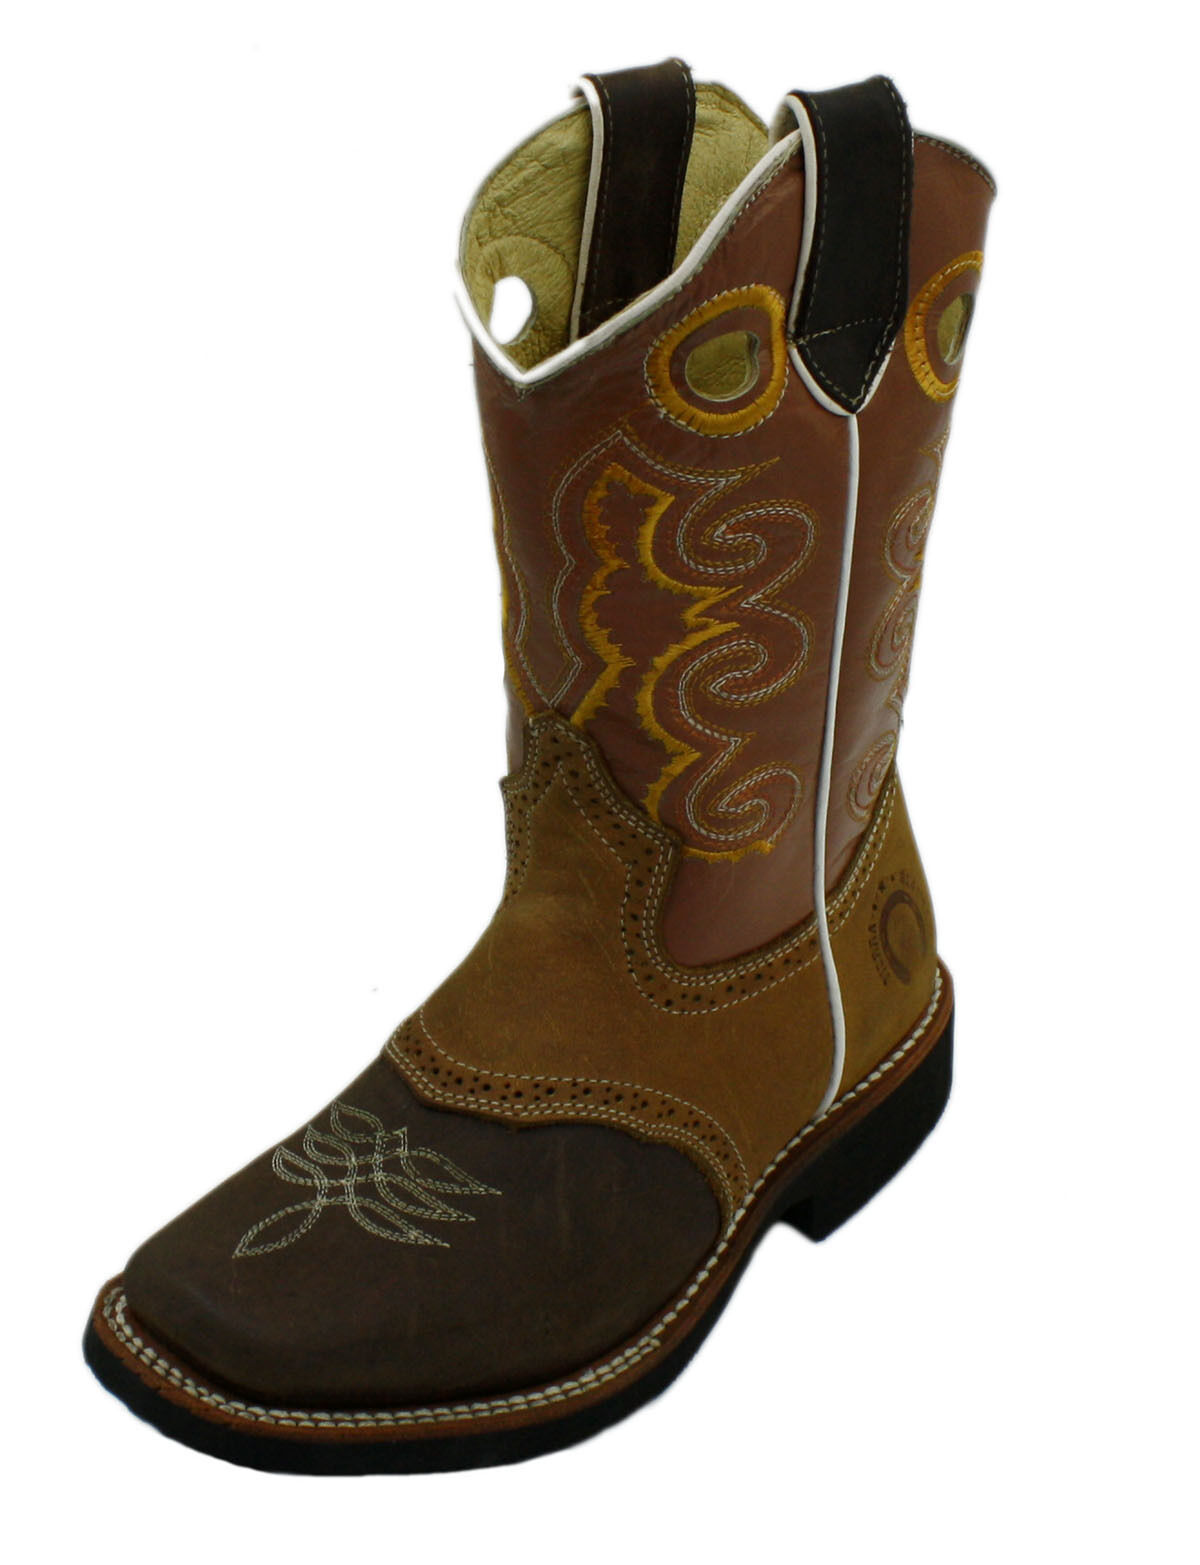 Youth Sizes Kids Genuine Cow Boy Leather Boots Style DB-Youth Boots